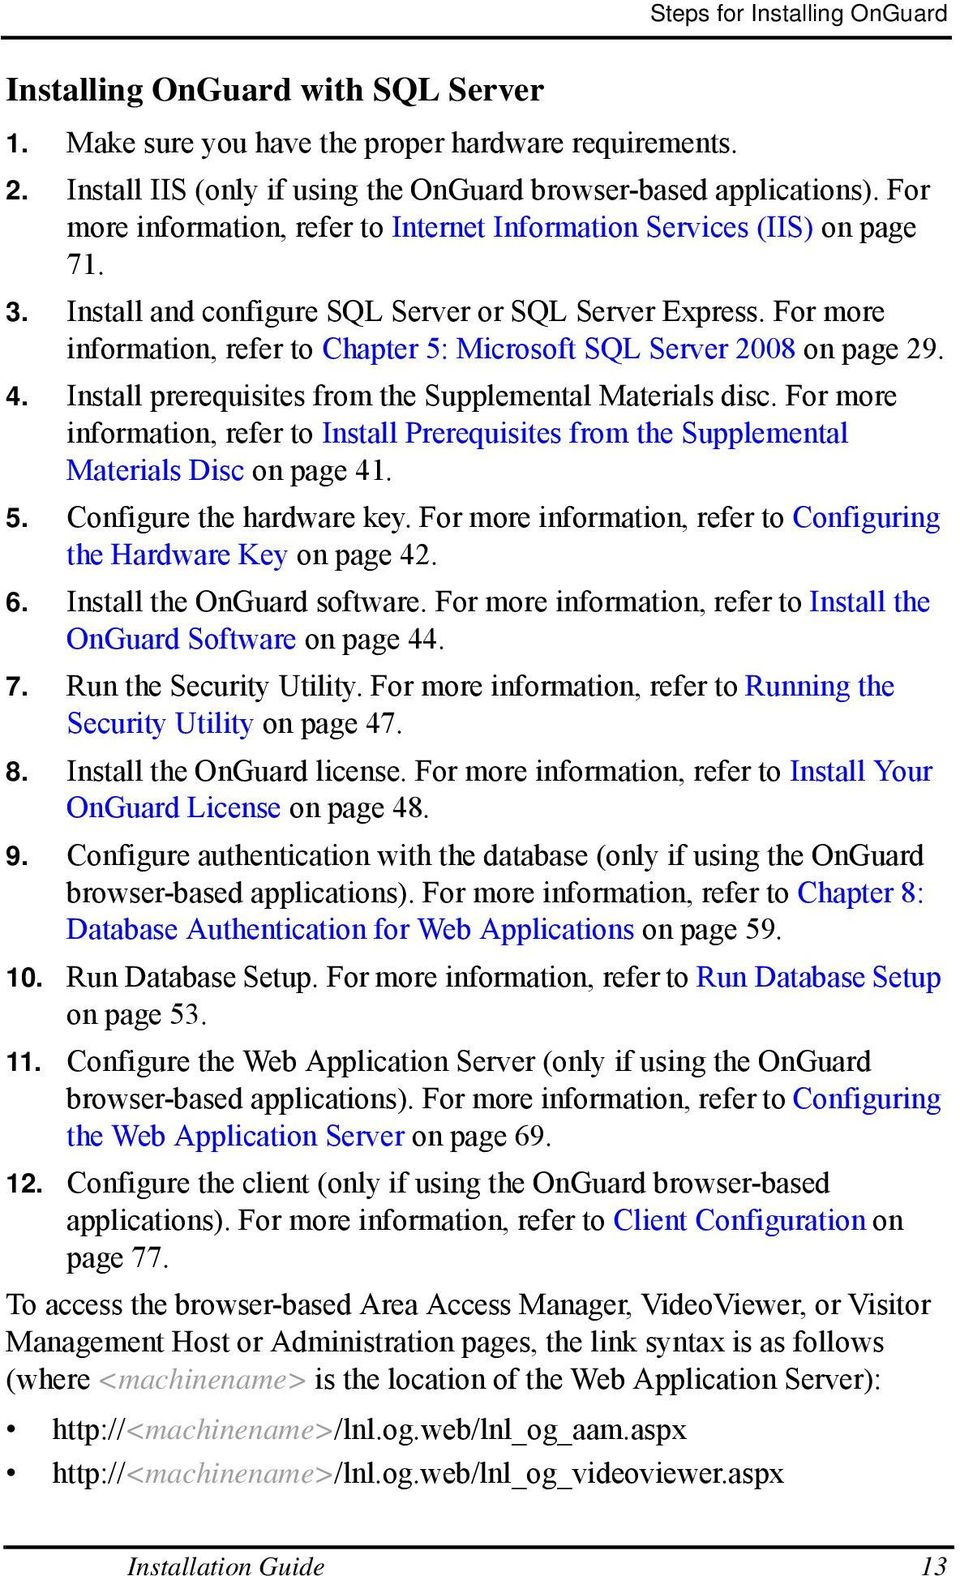 For more information, refer to Chapter 5: Microsoft SQL Server 2008 on page 29. 4. Install prerequisites from the Supplemental Materials disc.